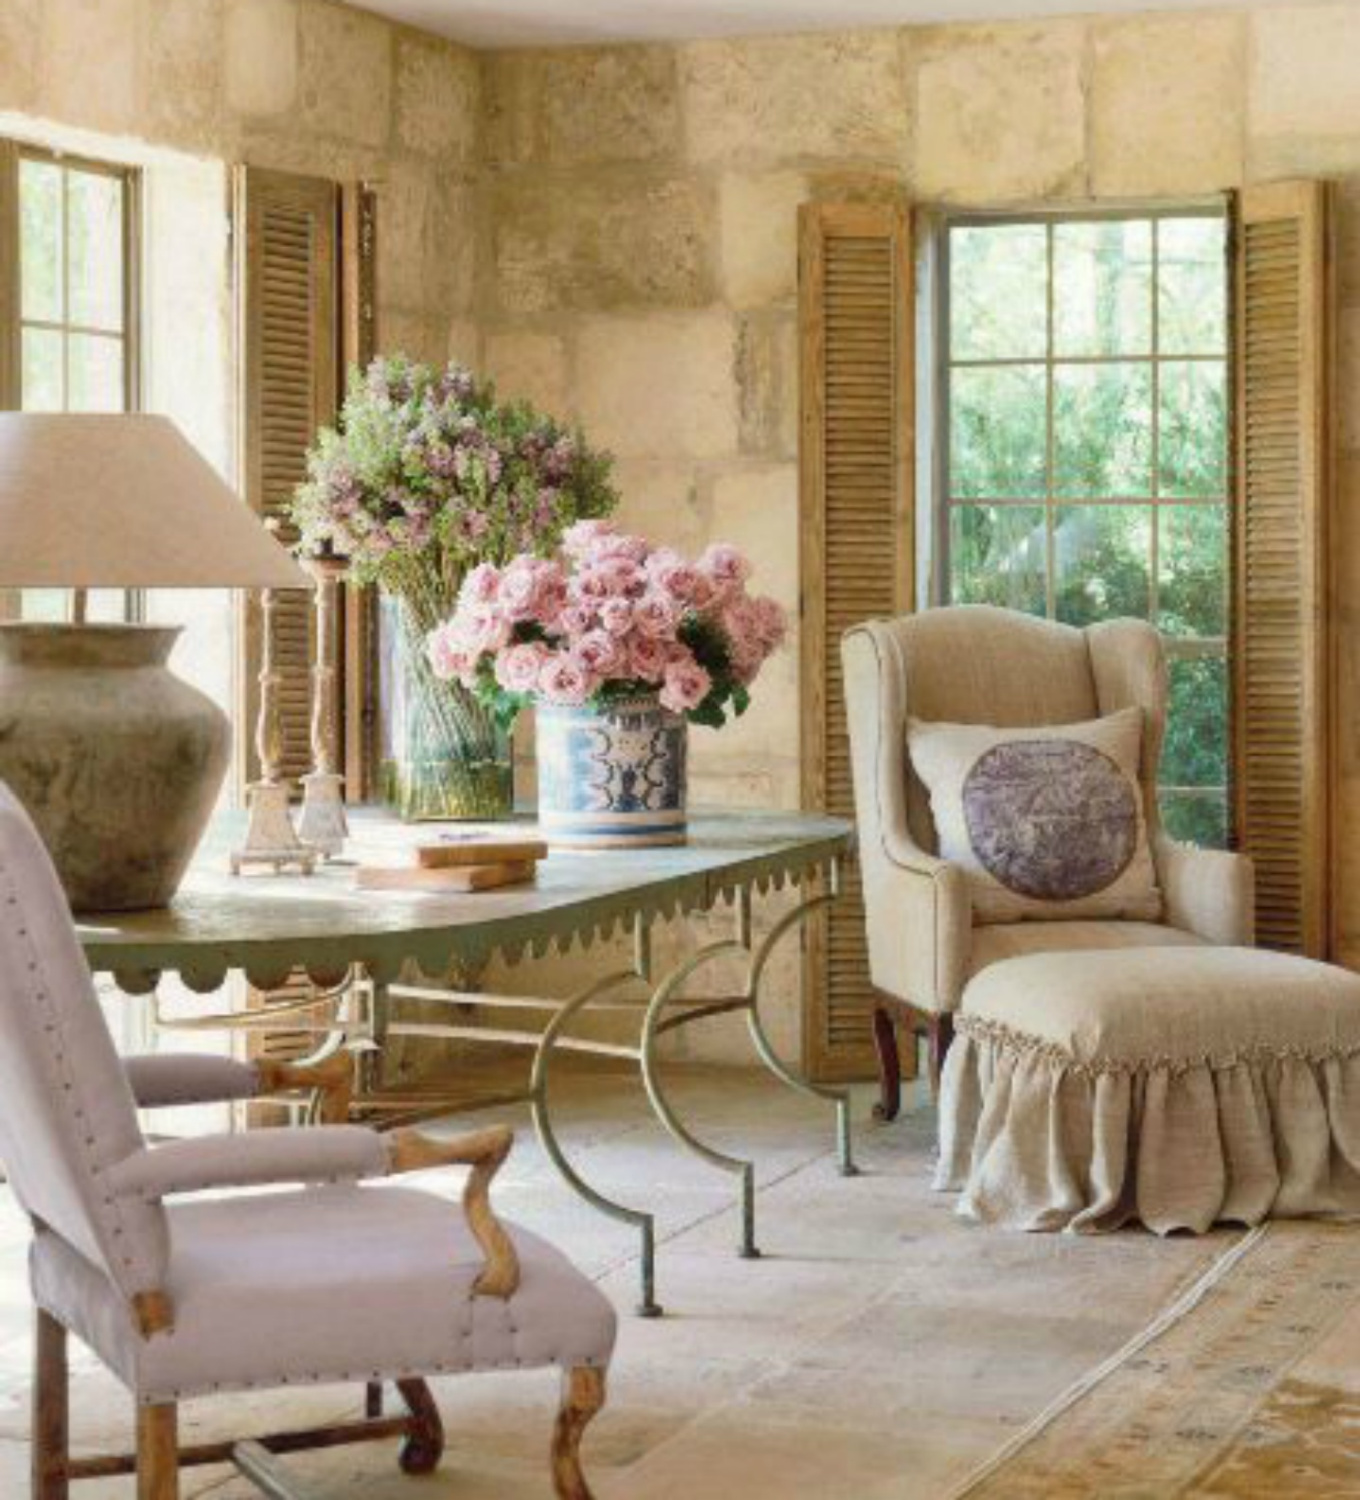 French farmhouse living room with antiques, limestone, and shutters on Hello Lovely Studio #chateaudomingue #Frenchfarmhouse #PamelaPierce